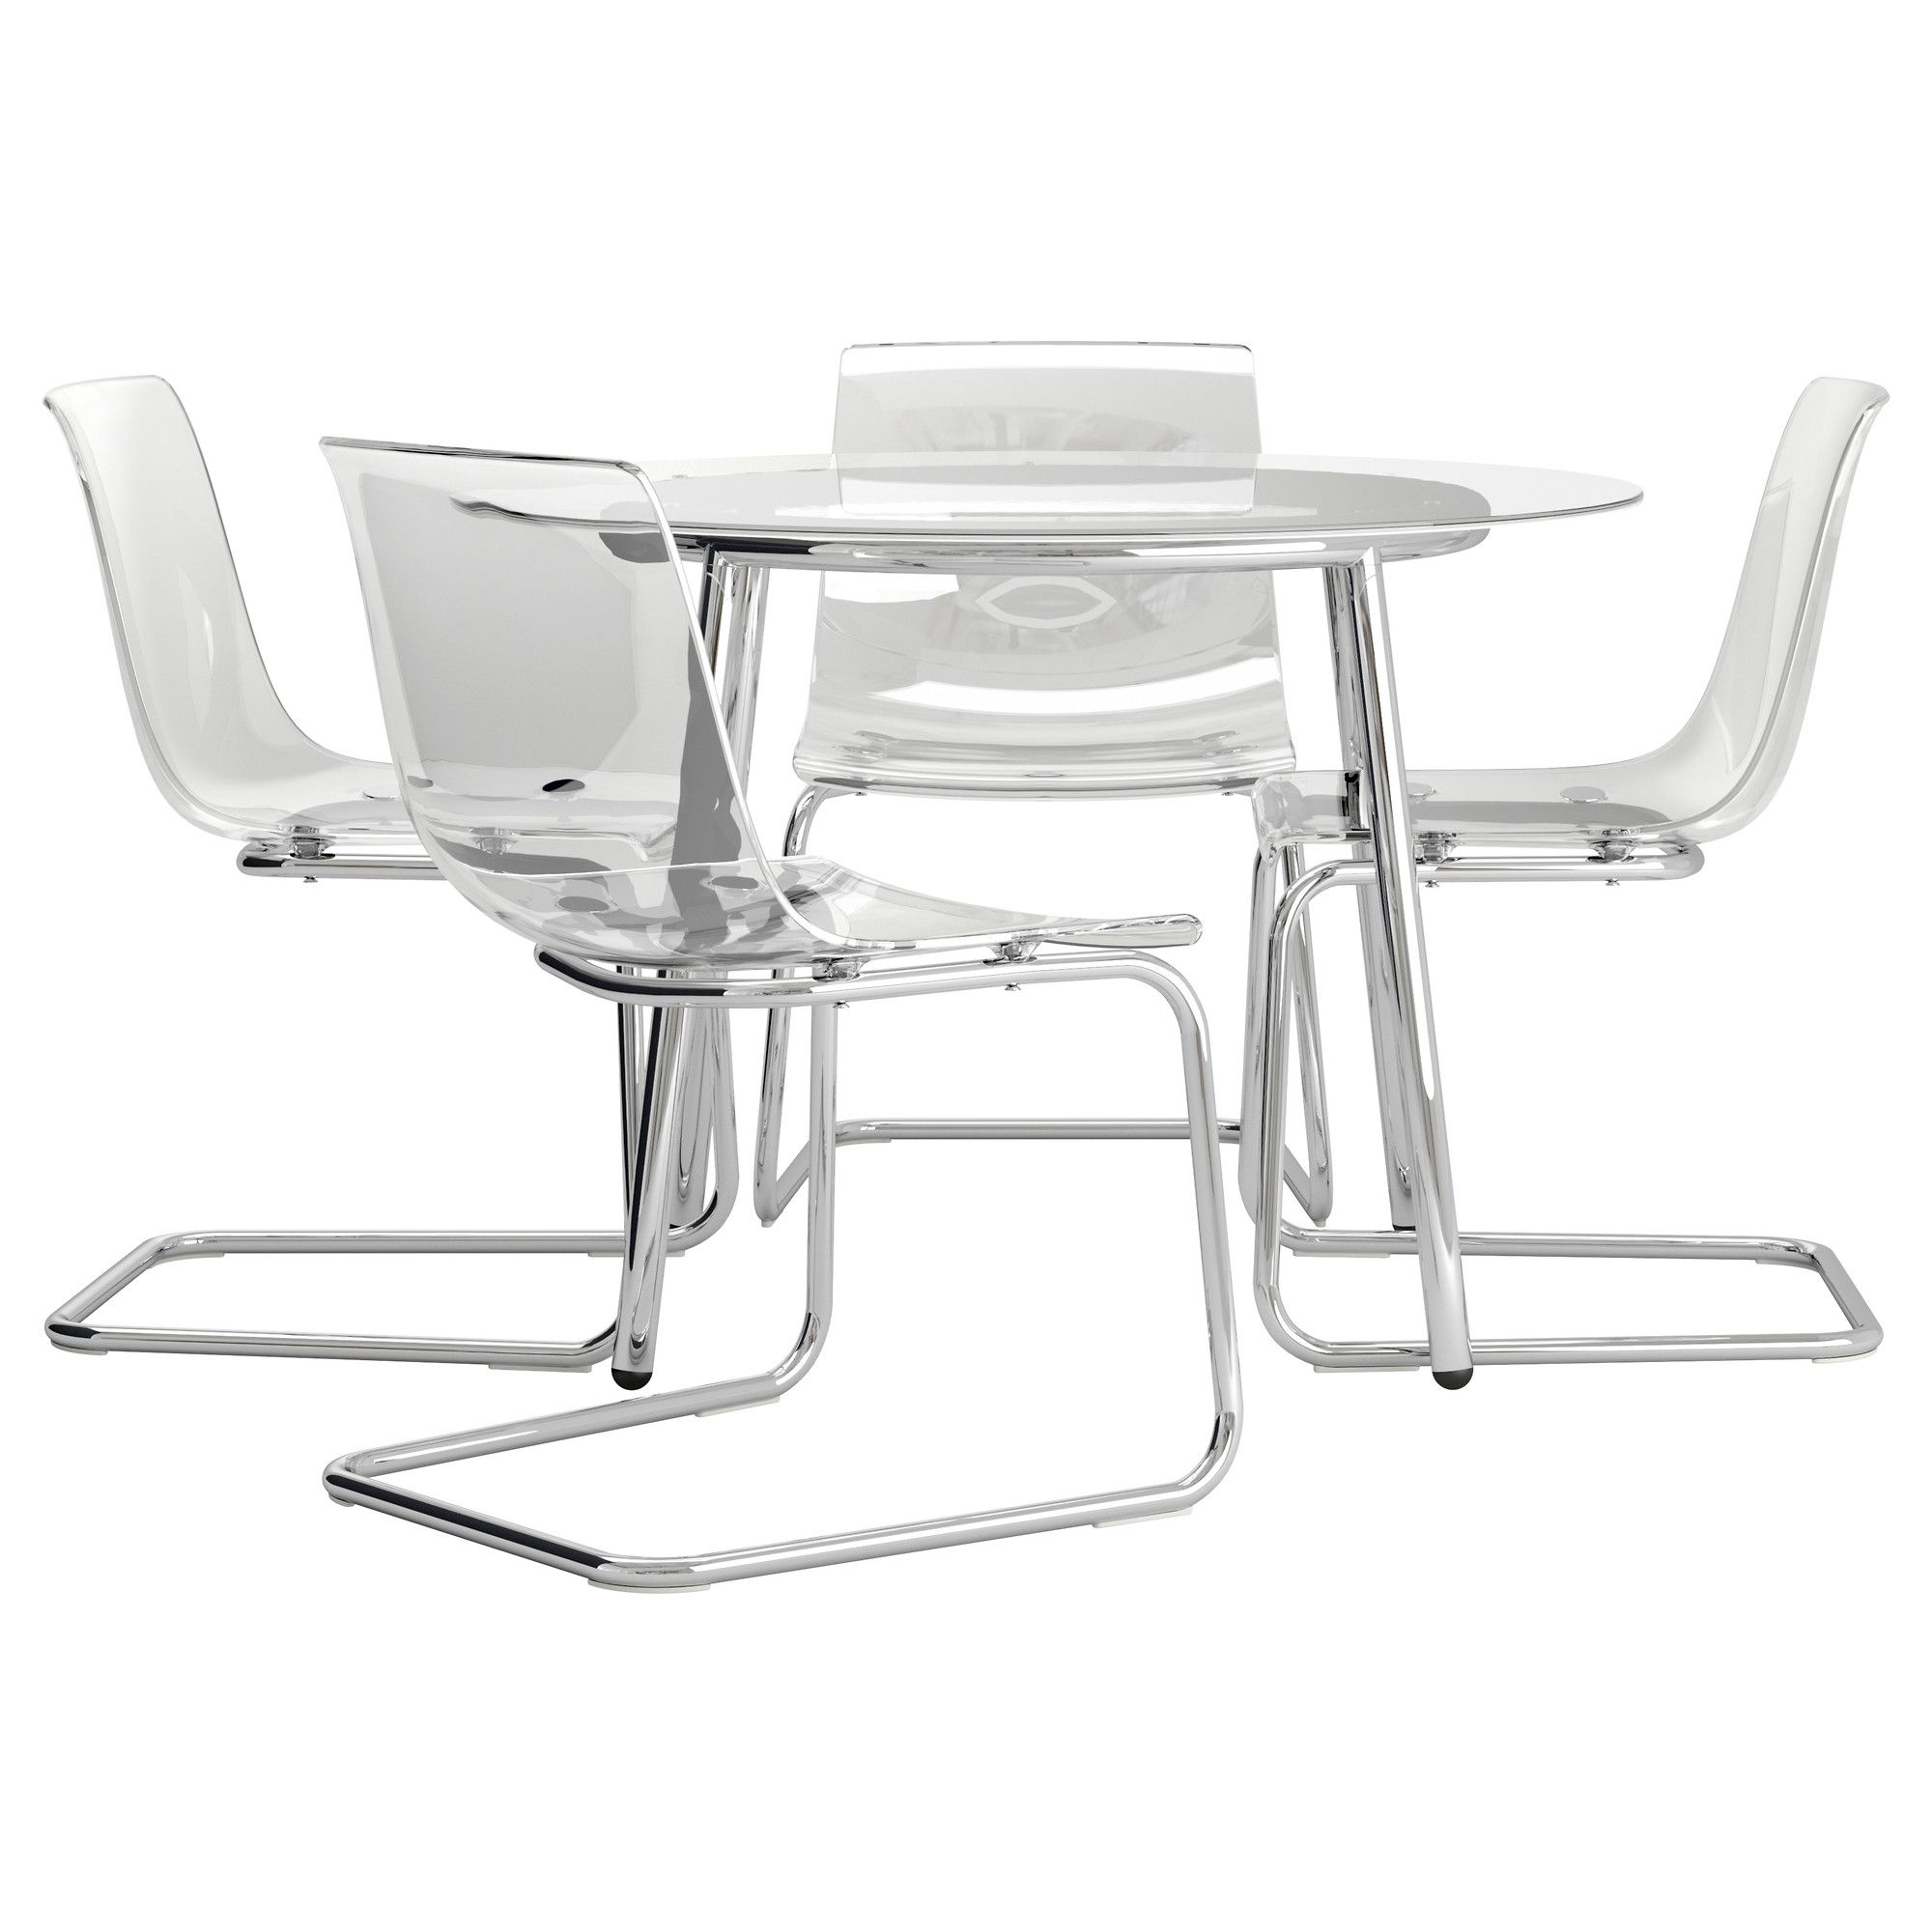 Glass Dining Table With 4 Chairs Price Full Size of Large Size of